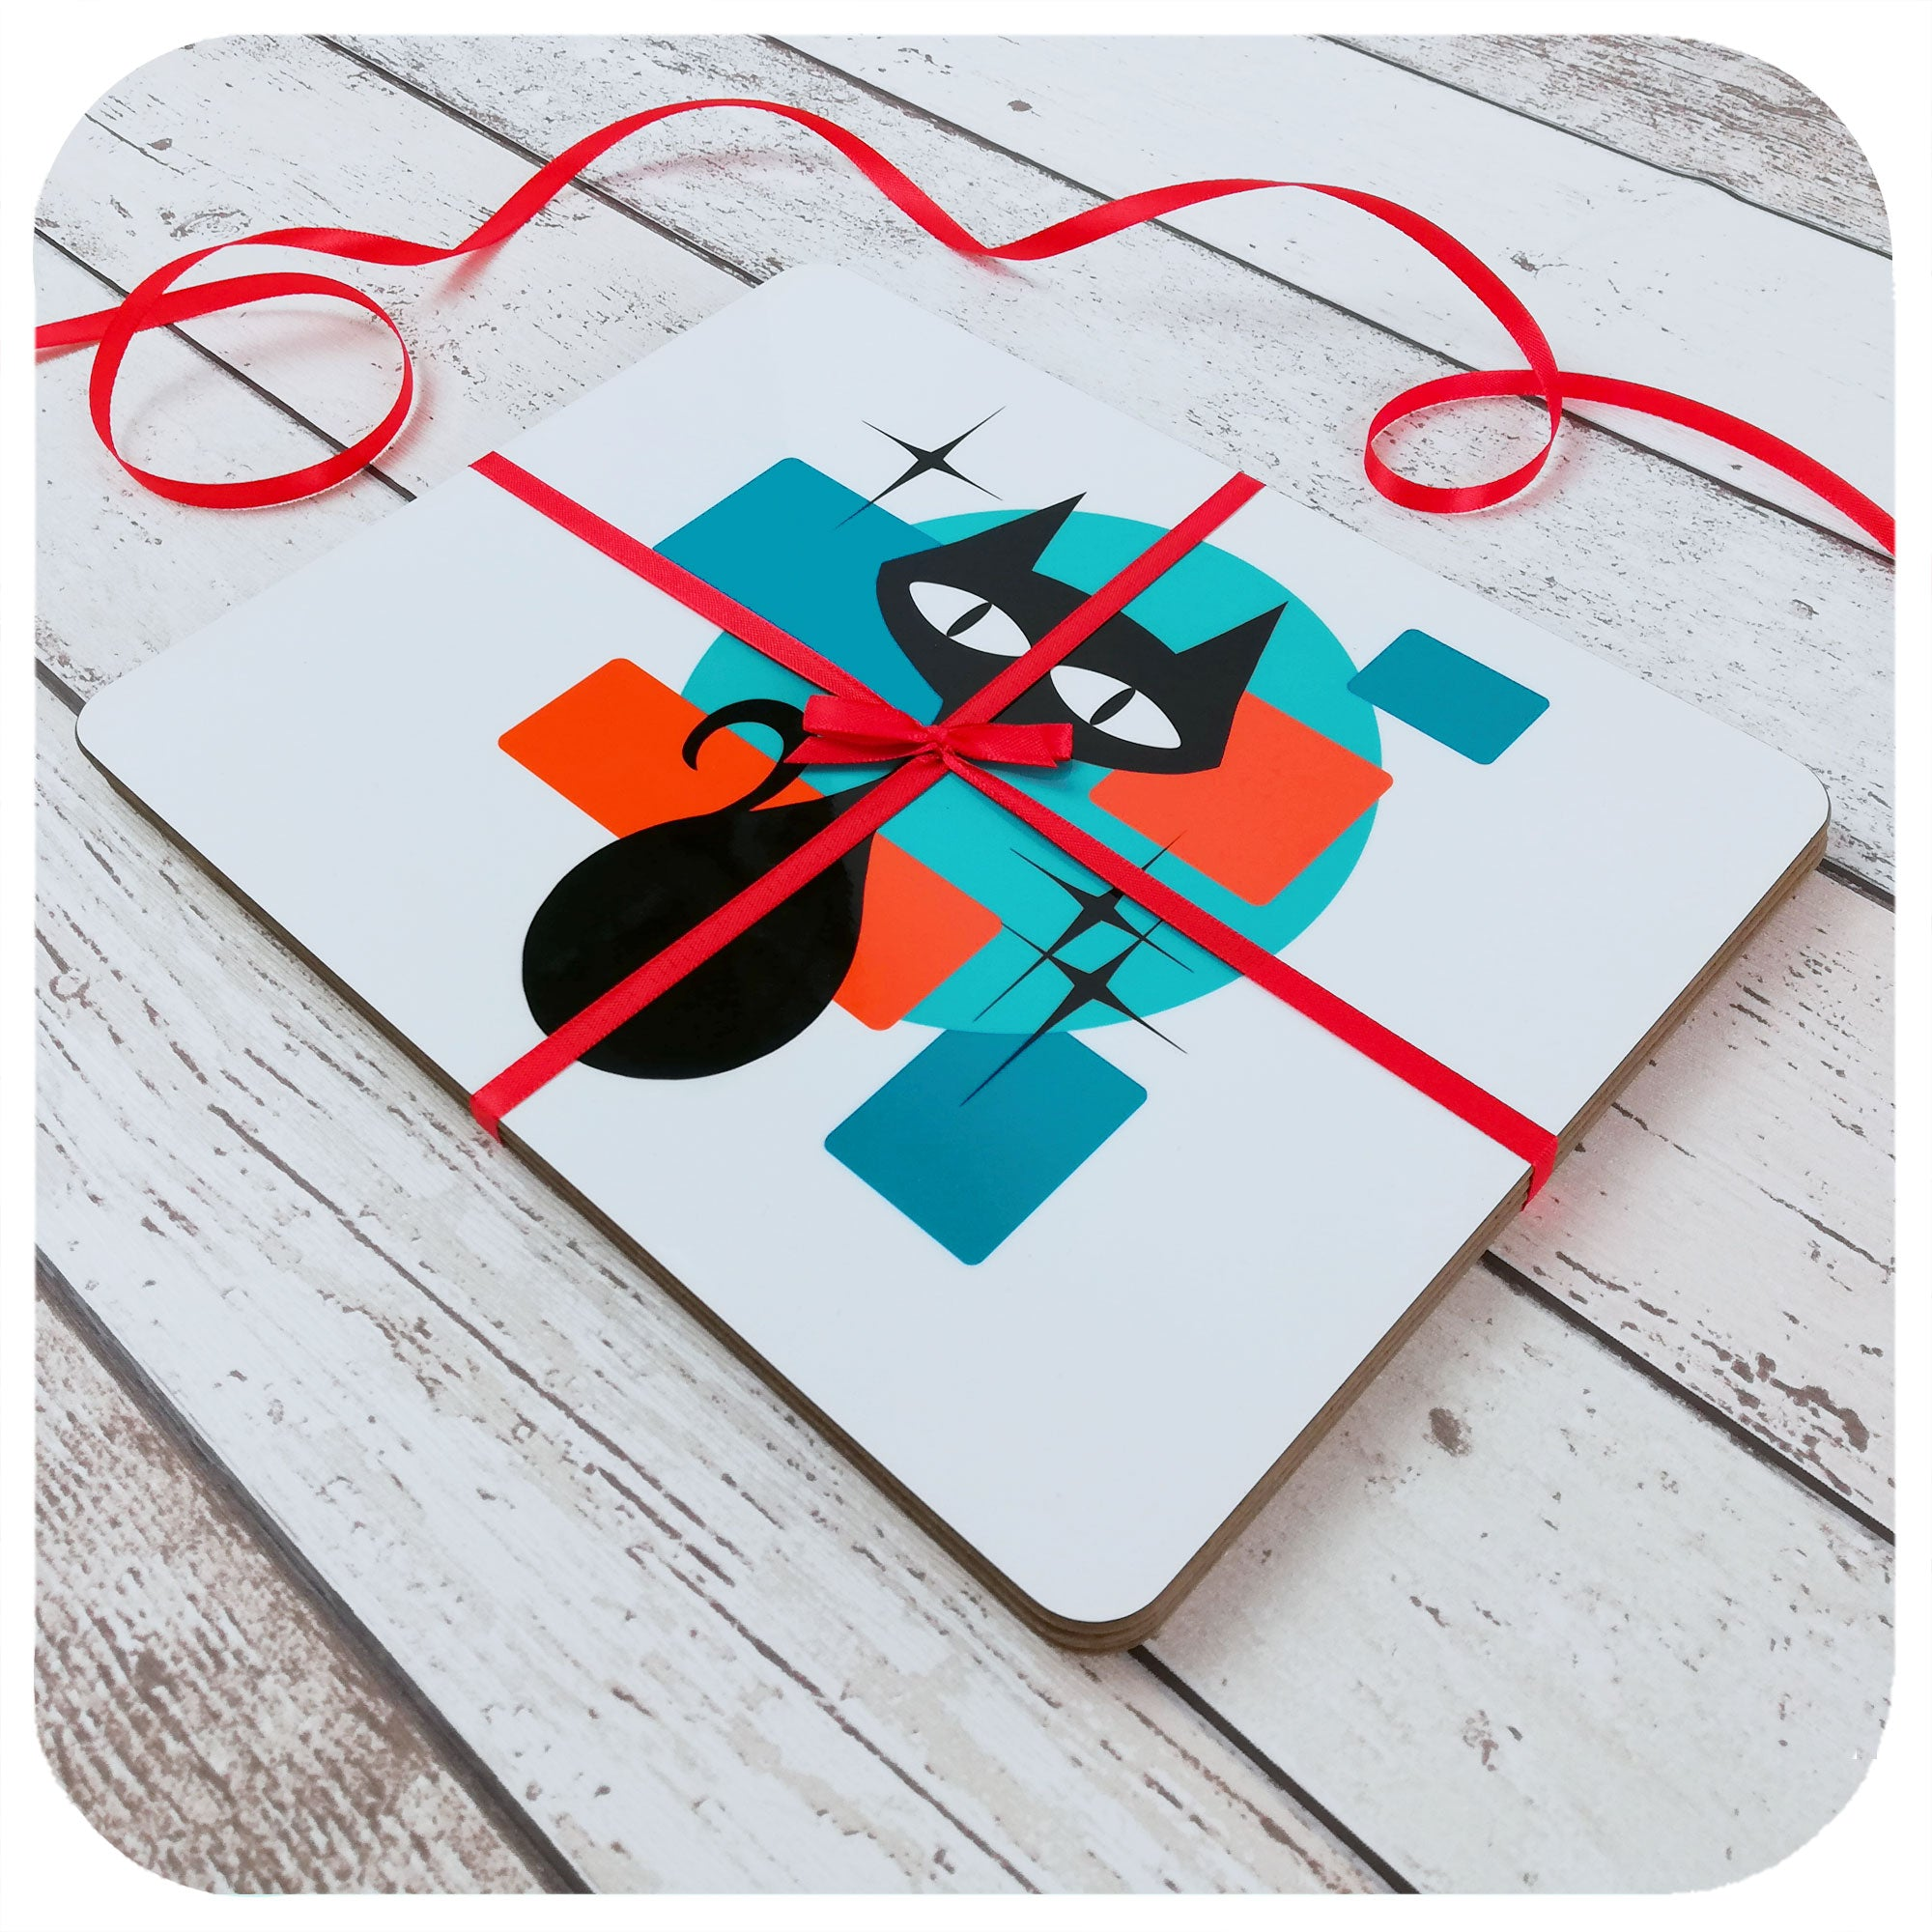 Set of 6 Atomic Cat Placemats tied with red ribbon | The Inkabilly Emporium